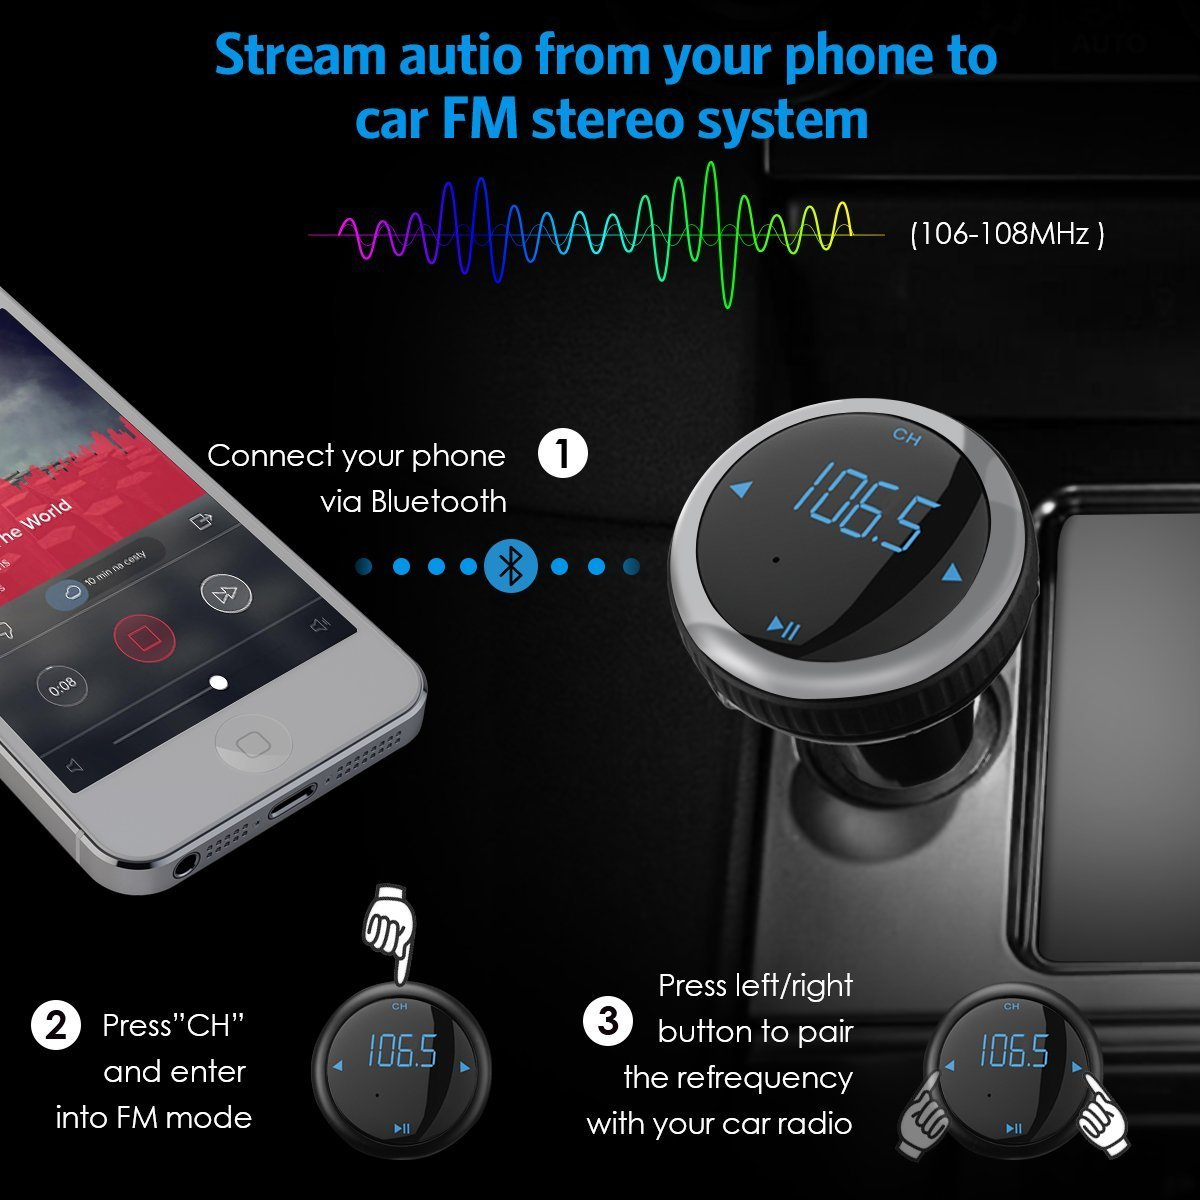 Wireless Bluetooth Car Kit FM Transmitter with Smart Car Locator, Handsfree Call, Car MP3 Player with Dual USB Charger Radio Adapter - Silver by Aphaca (Image #3)